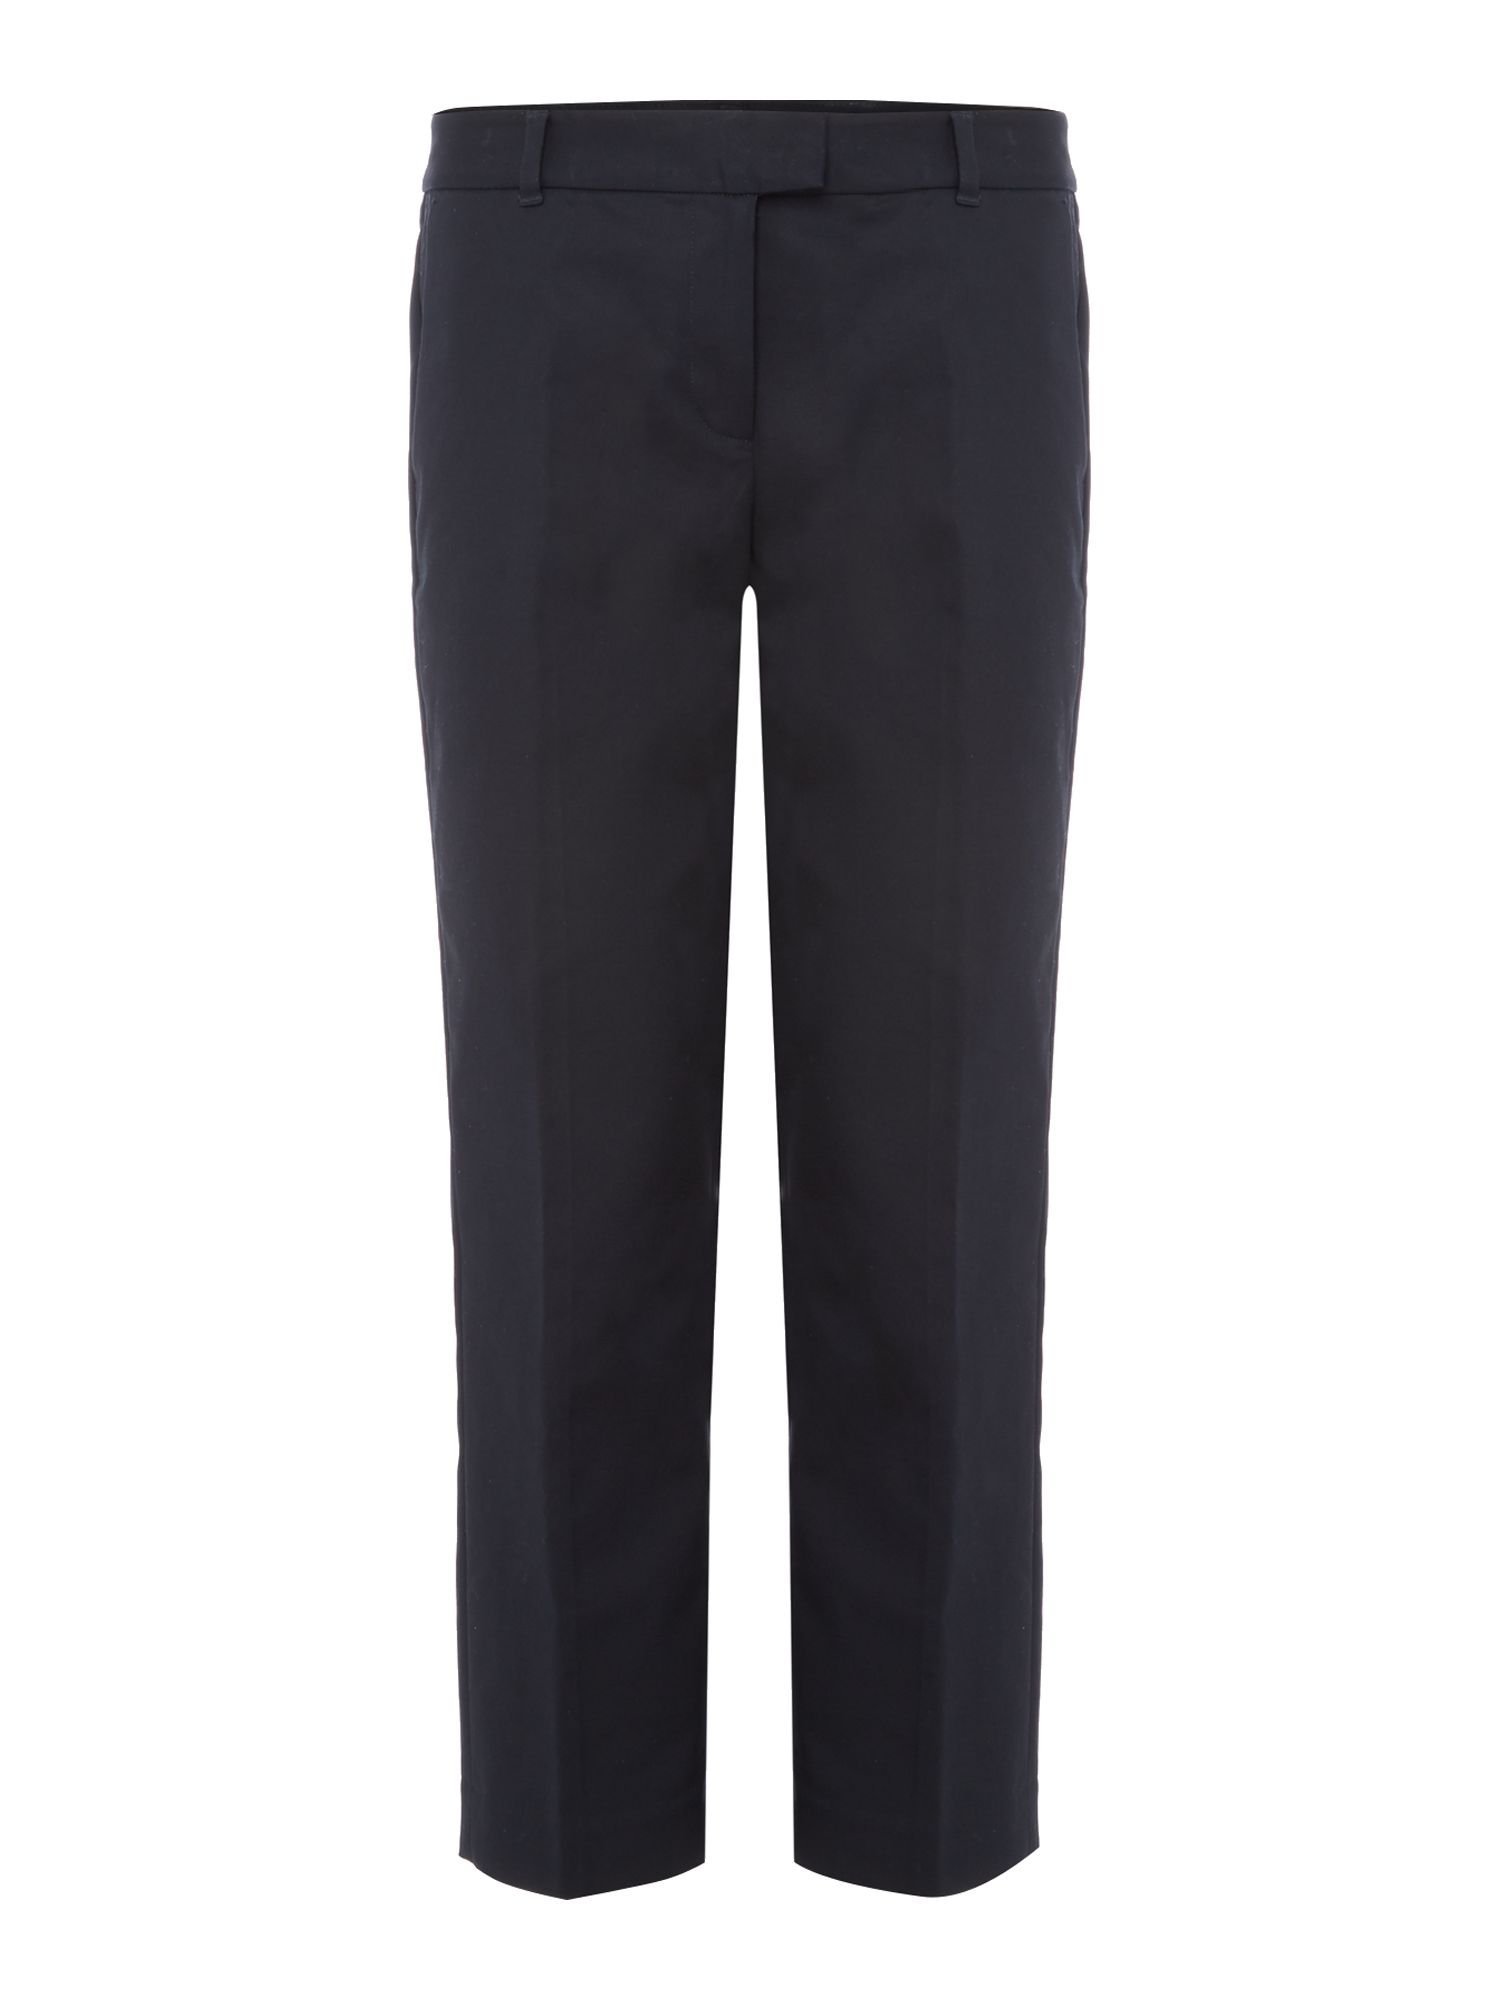 Michael Kors Cropped Cigarette Trousers, Blue